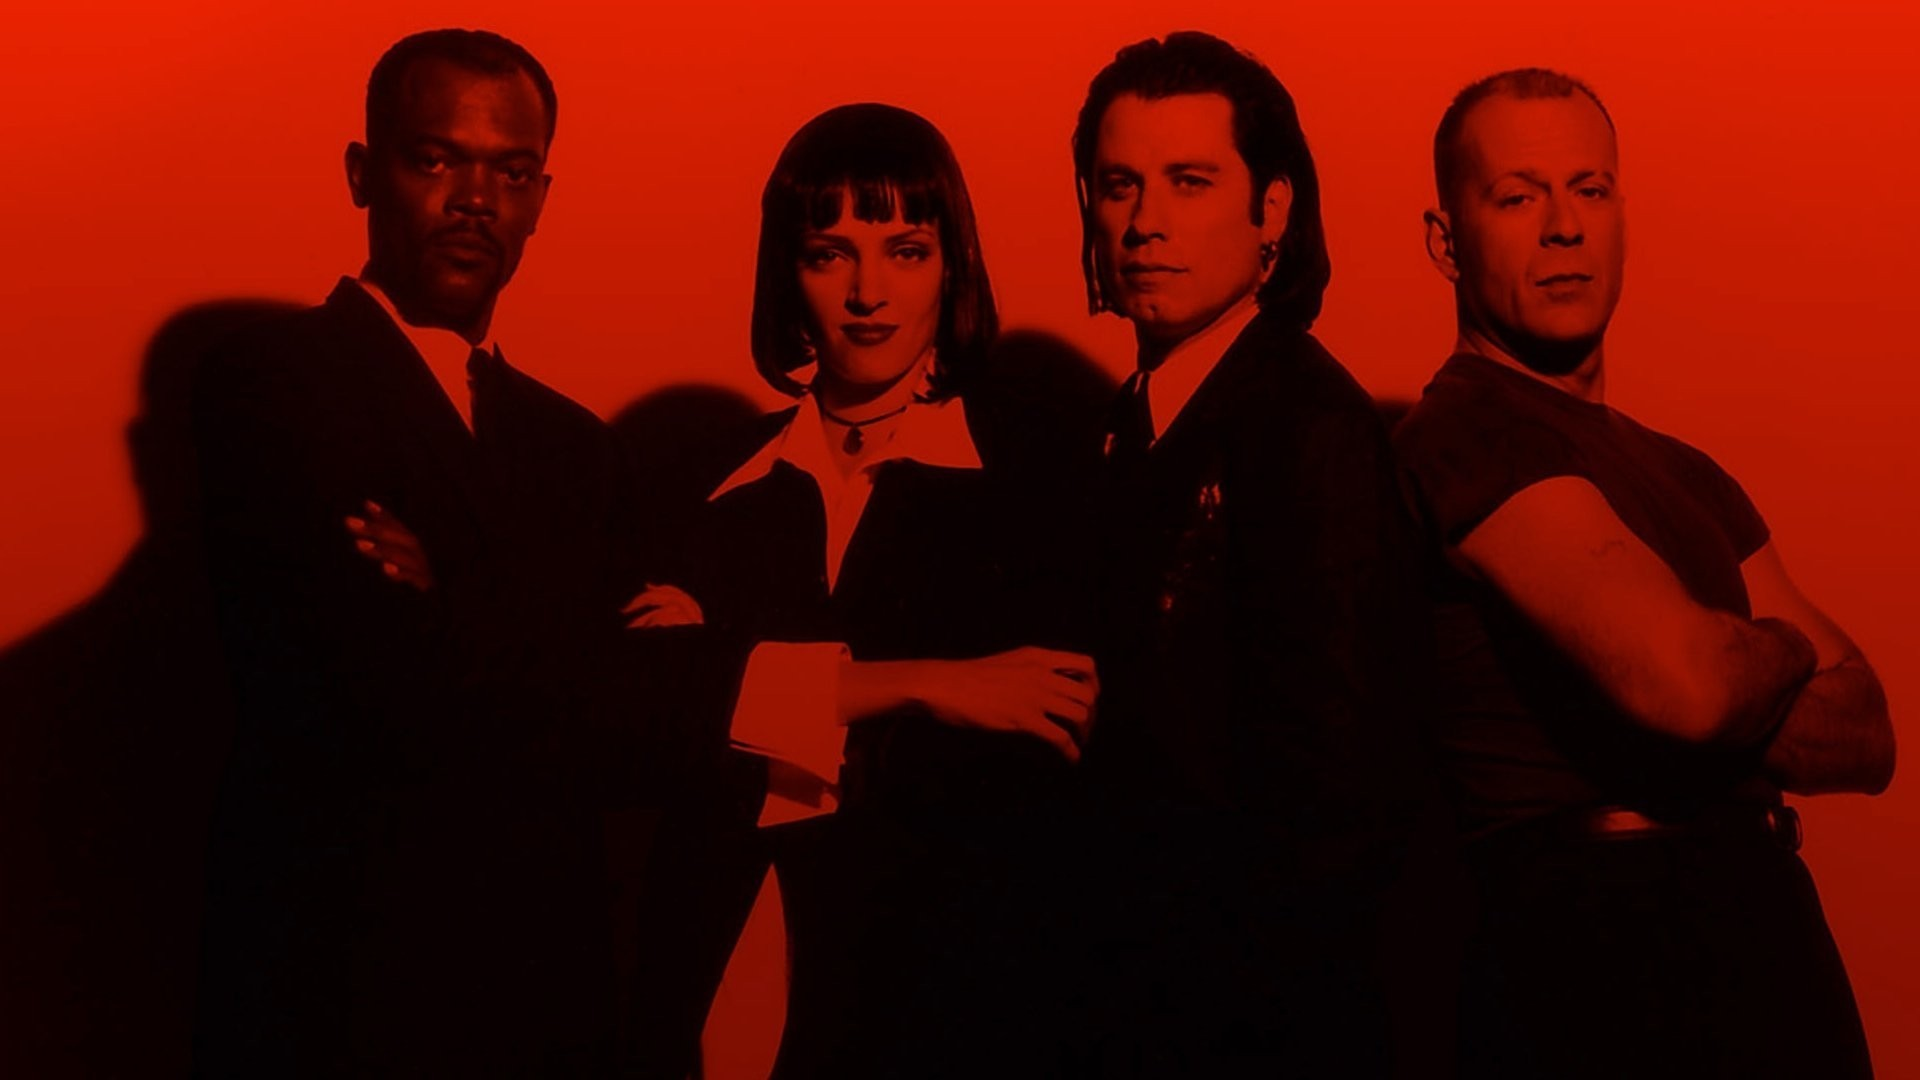 Bible Verse And Image Pulp Fiction Wallpaper: Pulp Fiction Wallpaper ·① Download Free Full HD Wallpapers